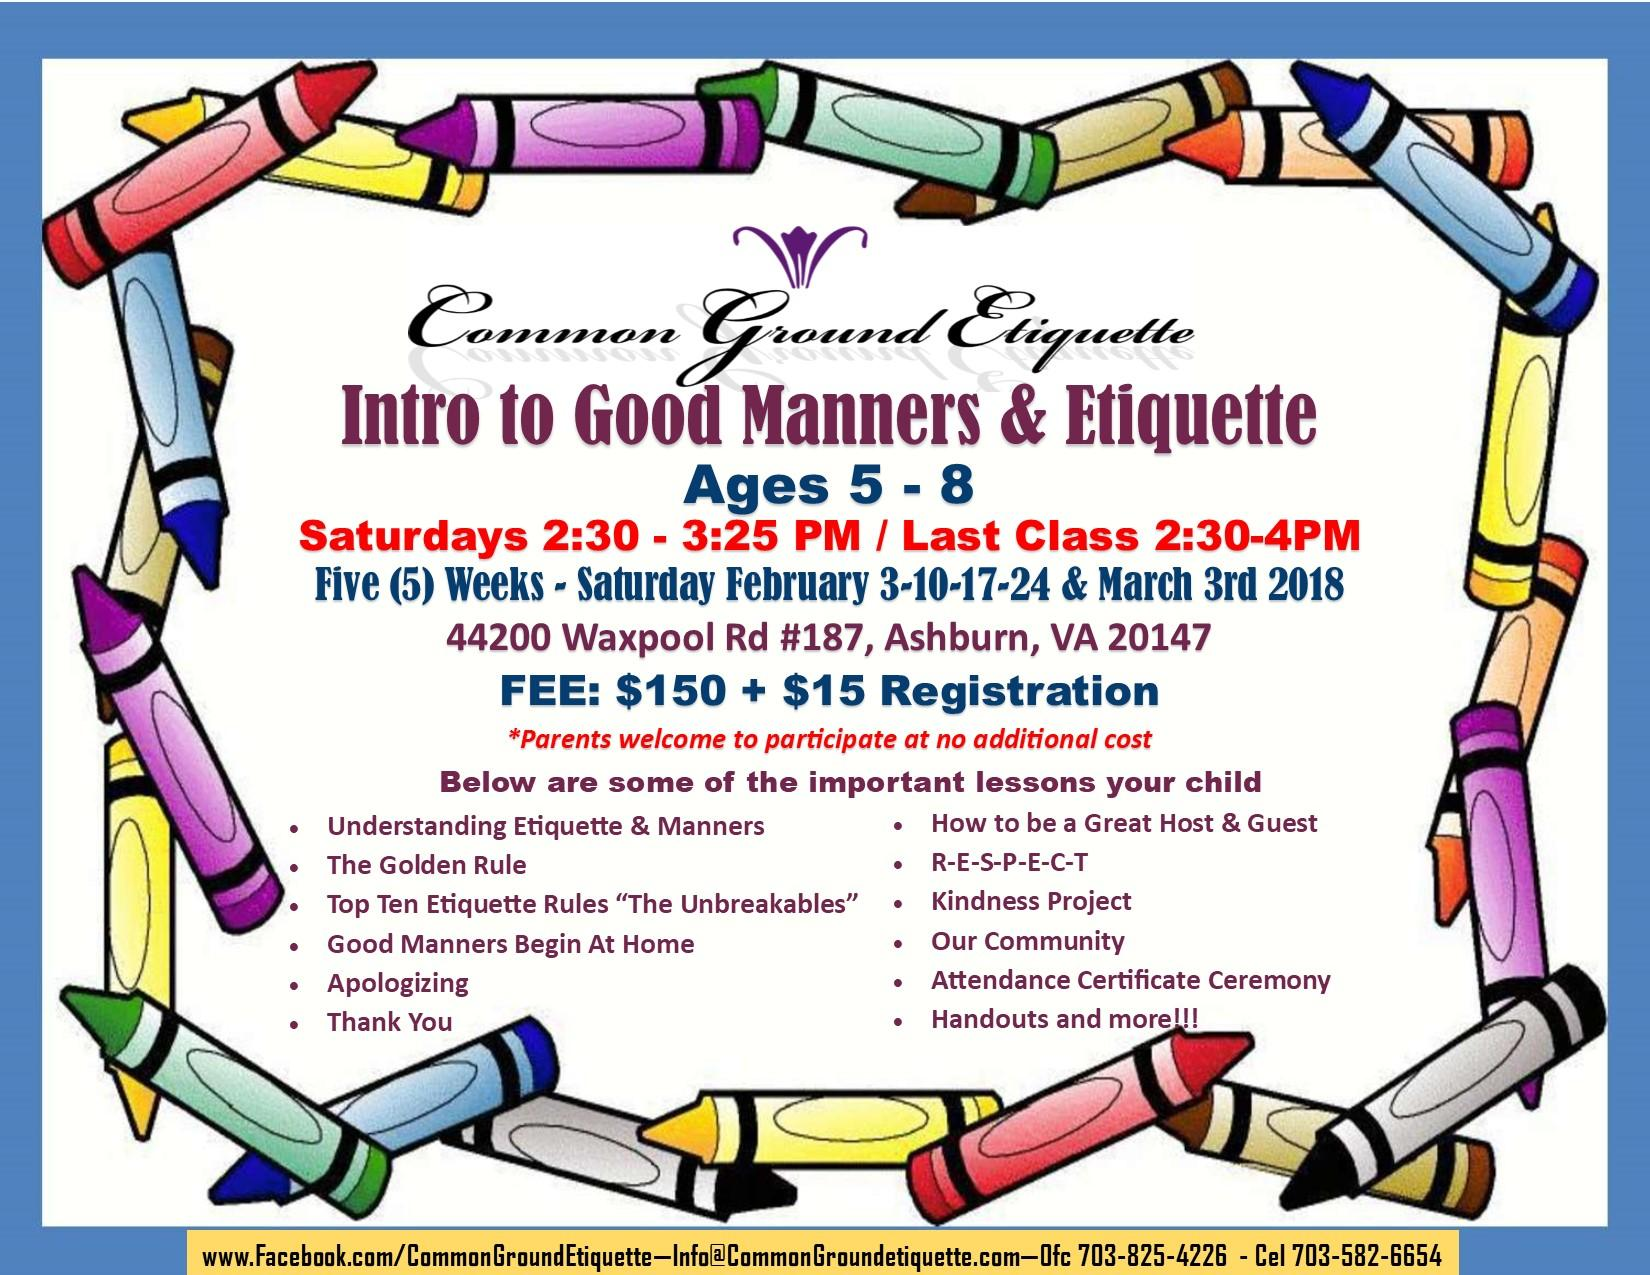 Intro to Good Manners & Etiquette - Ages 5 -8 photo